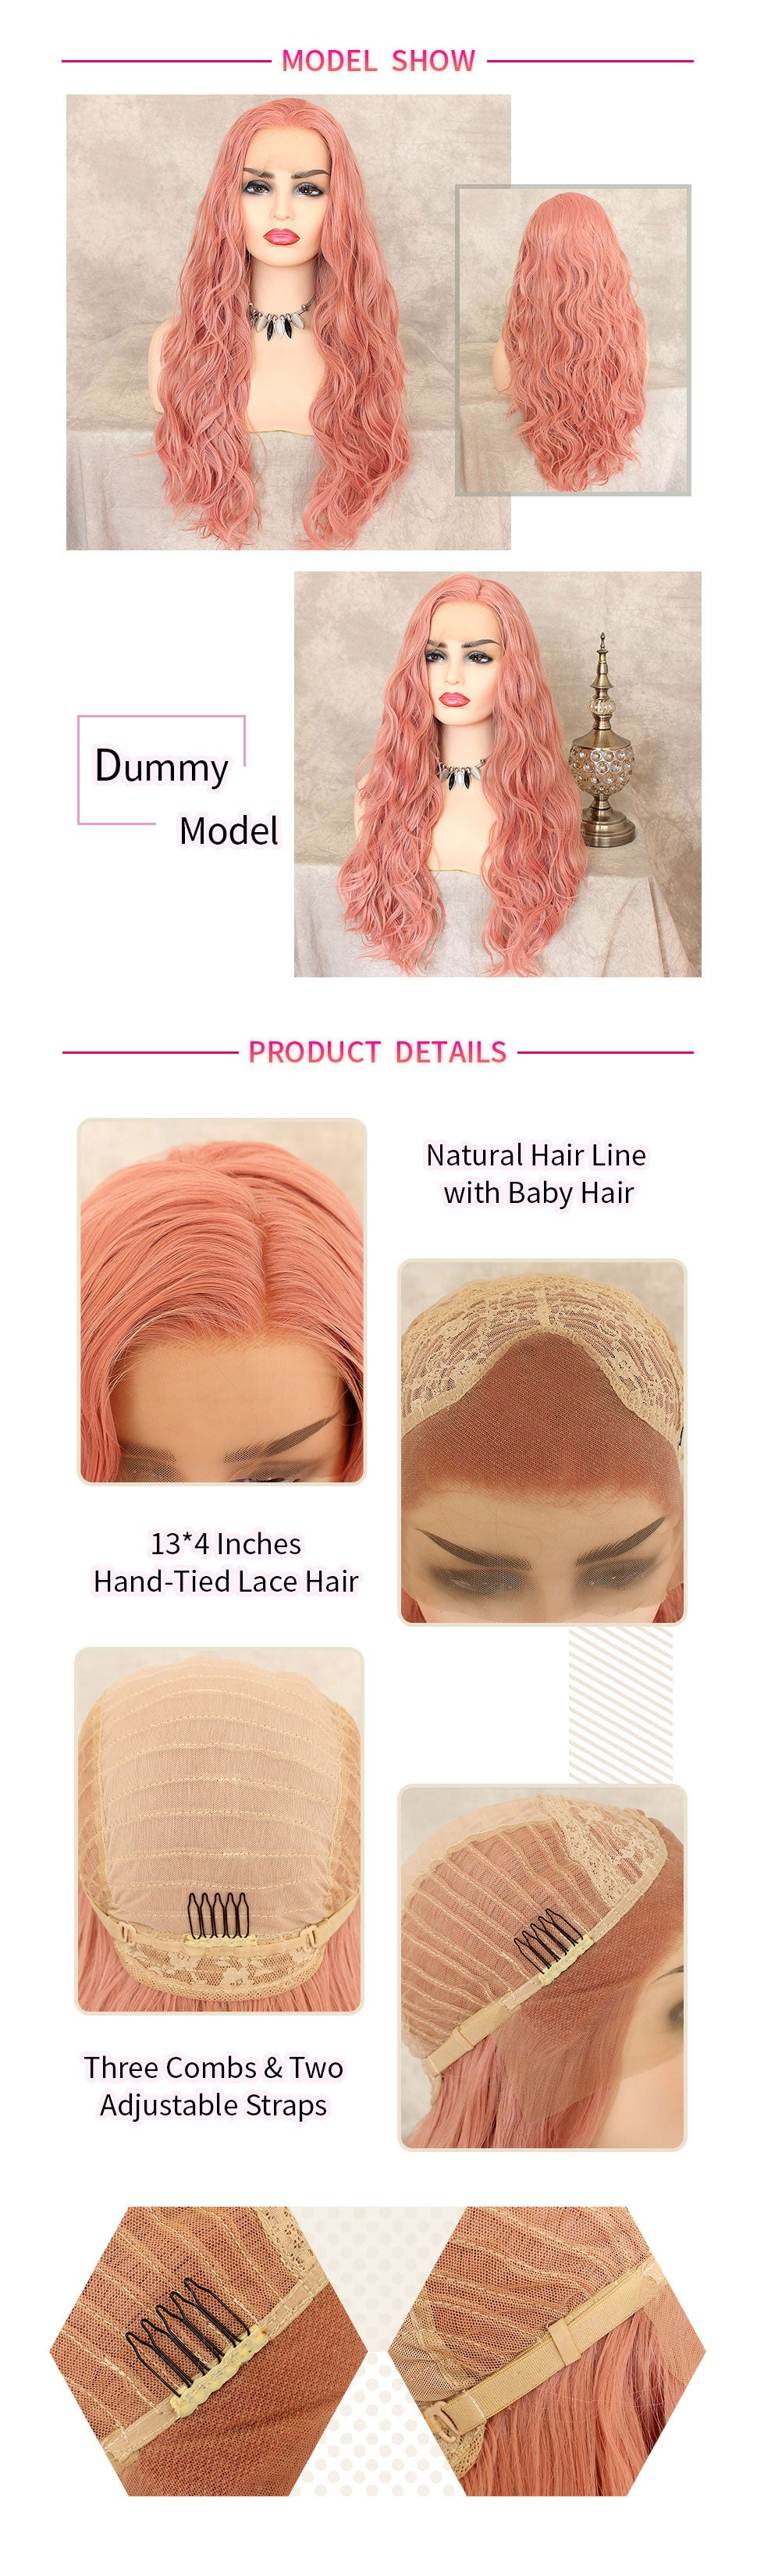 ReadyWig Pink Body Wave Synthetic Lace Front Wig 24 Inches-hair details